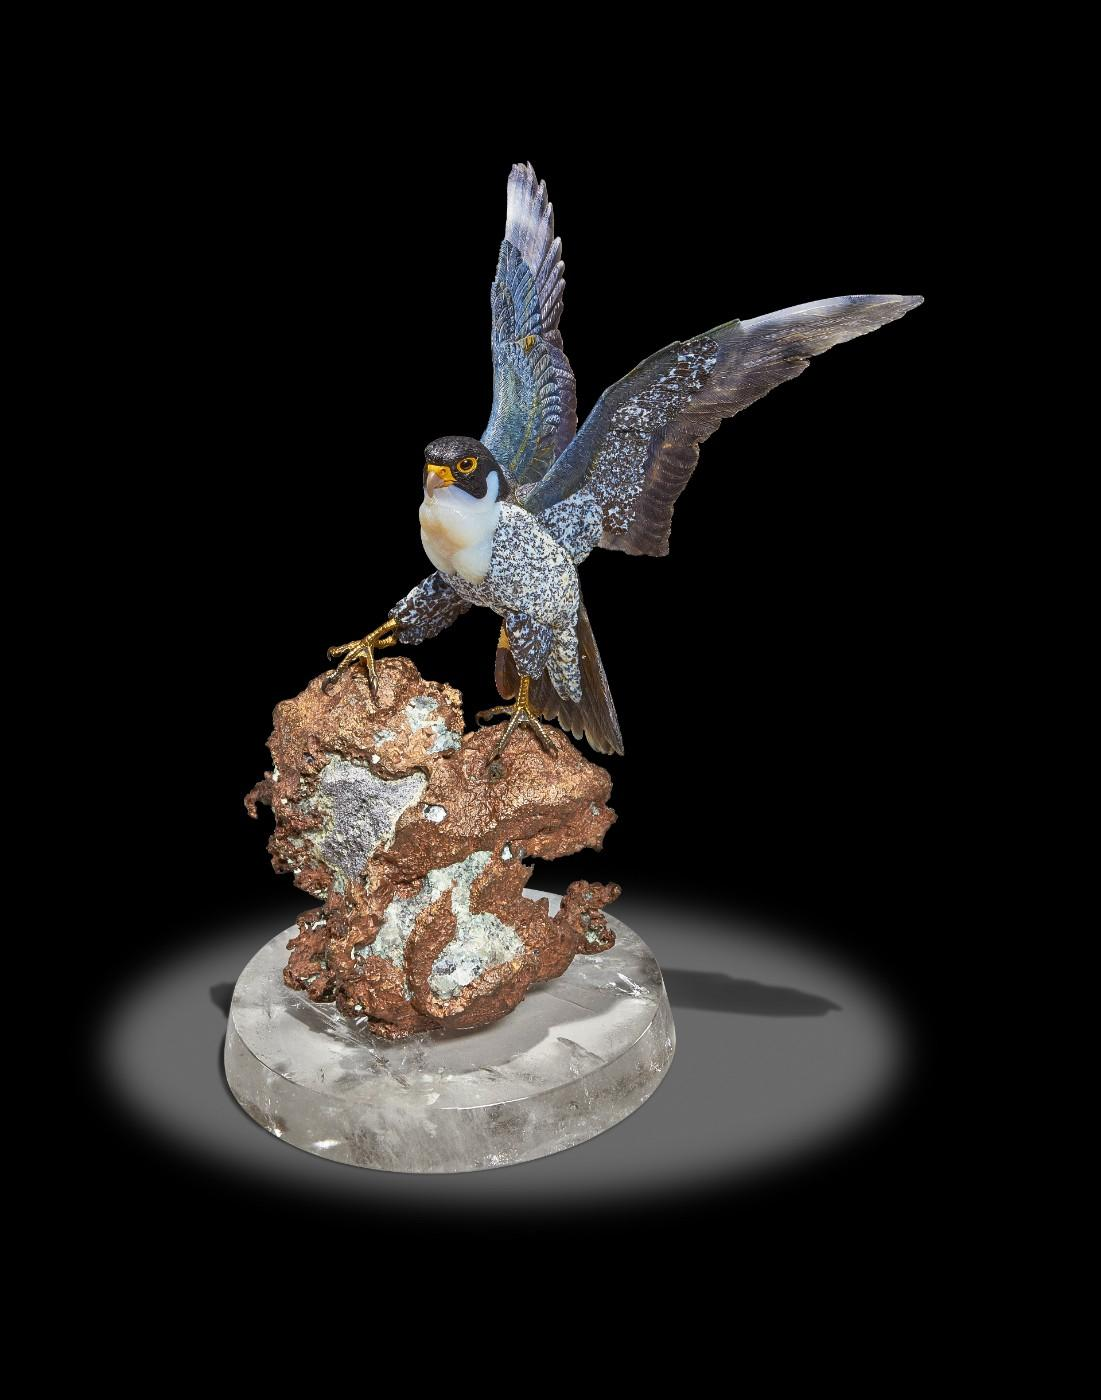 Carved Agate Falcon on Native Copper Base by Gerd Dreher, Idar-Oberstein, Germany (estimate: $15,000-25,000)